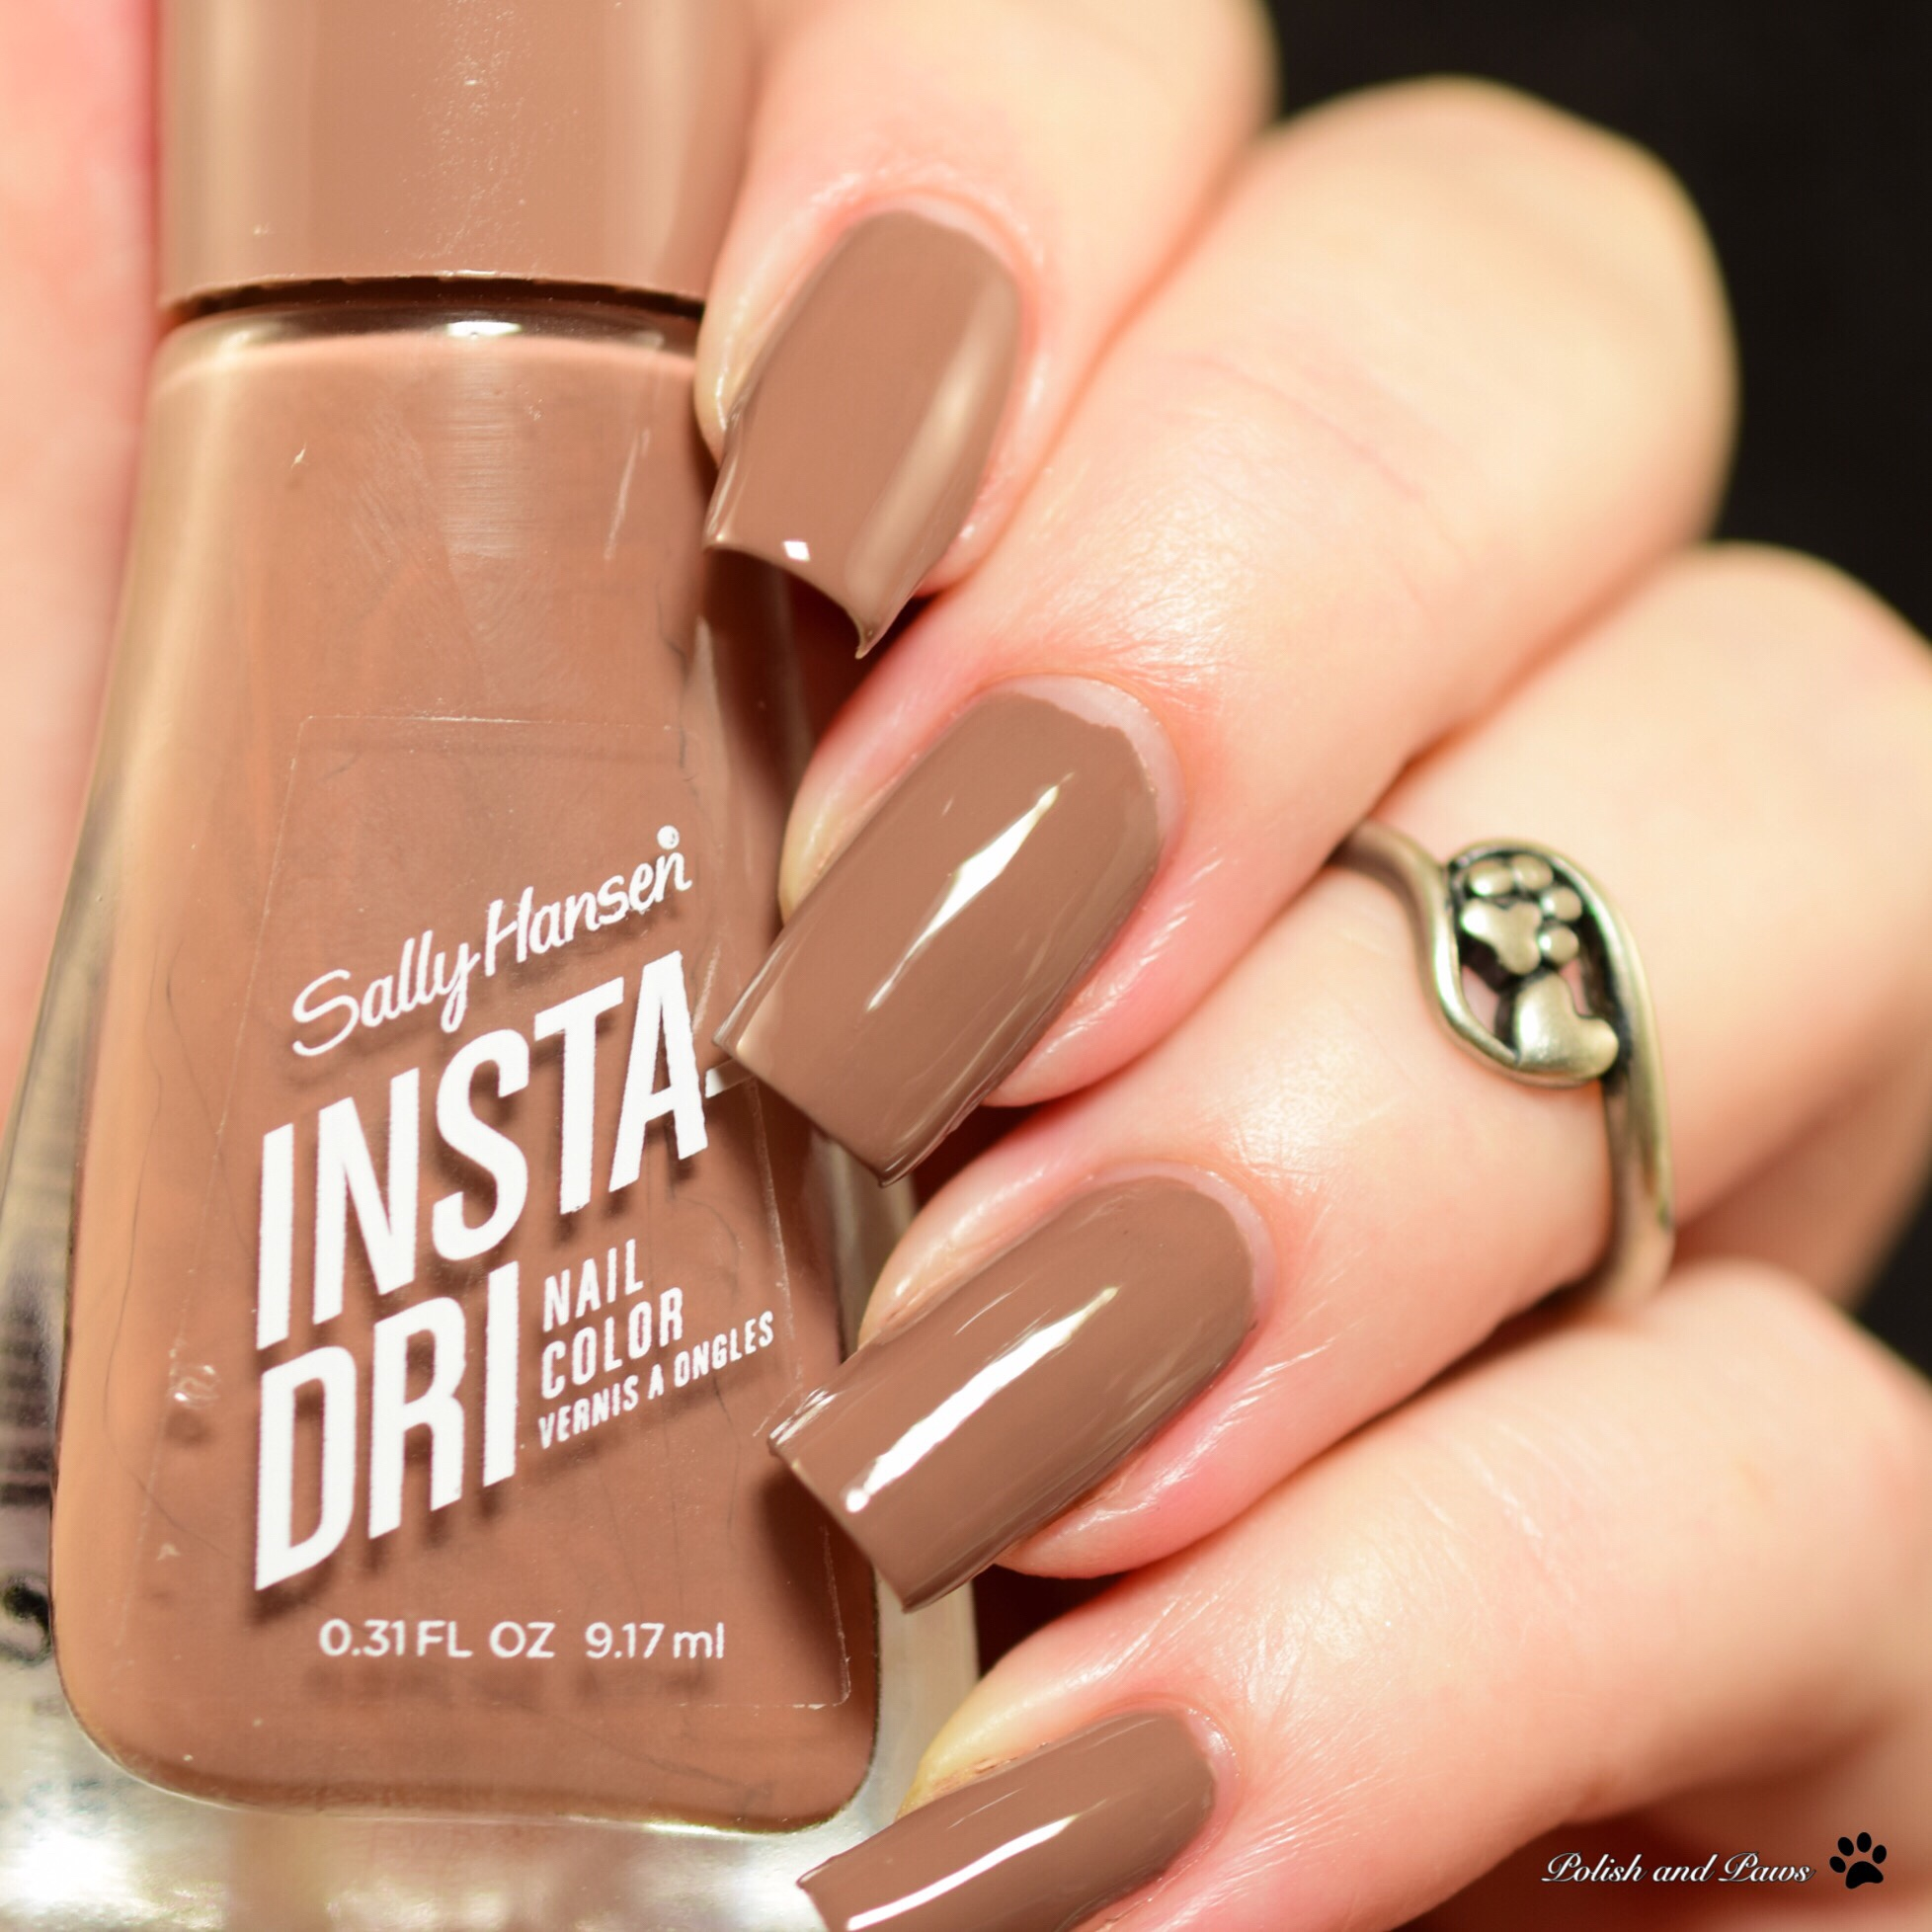 ac5b95e395 Sally Hansen Instra-Dri Swatch and Review | Polish and Paws